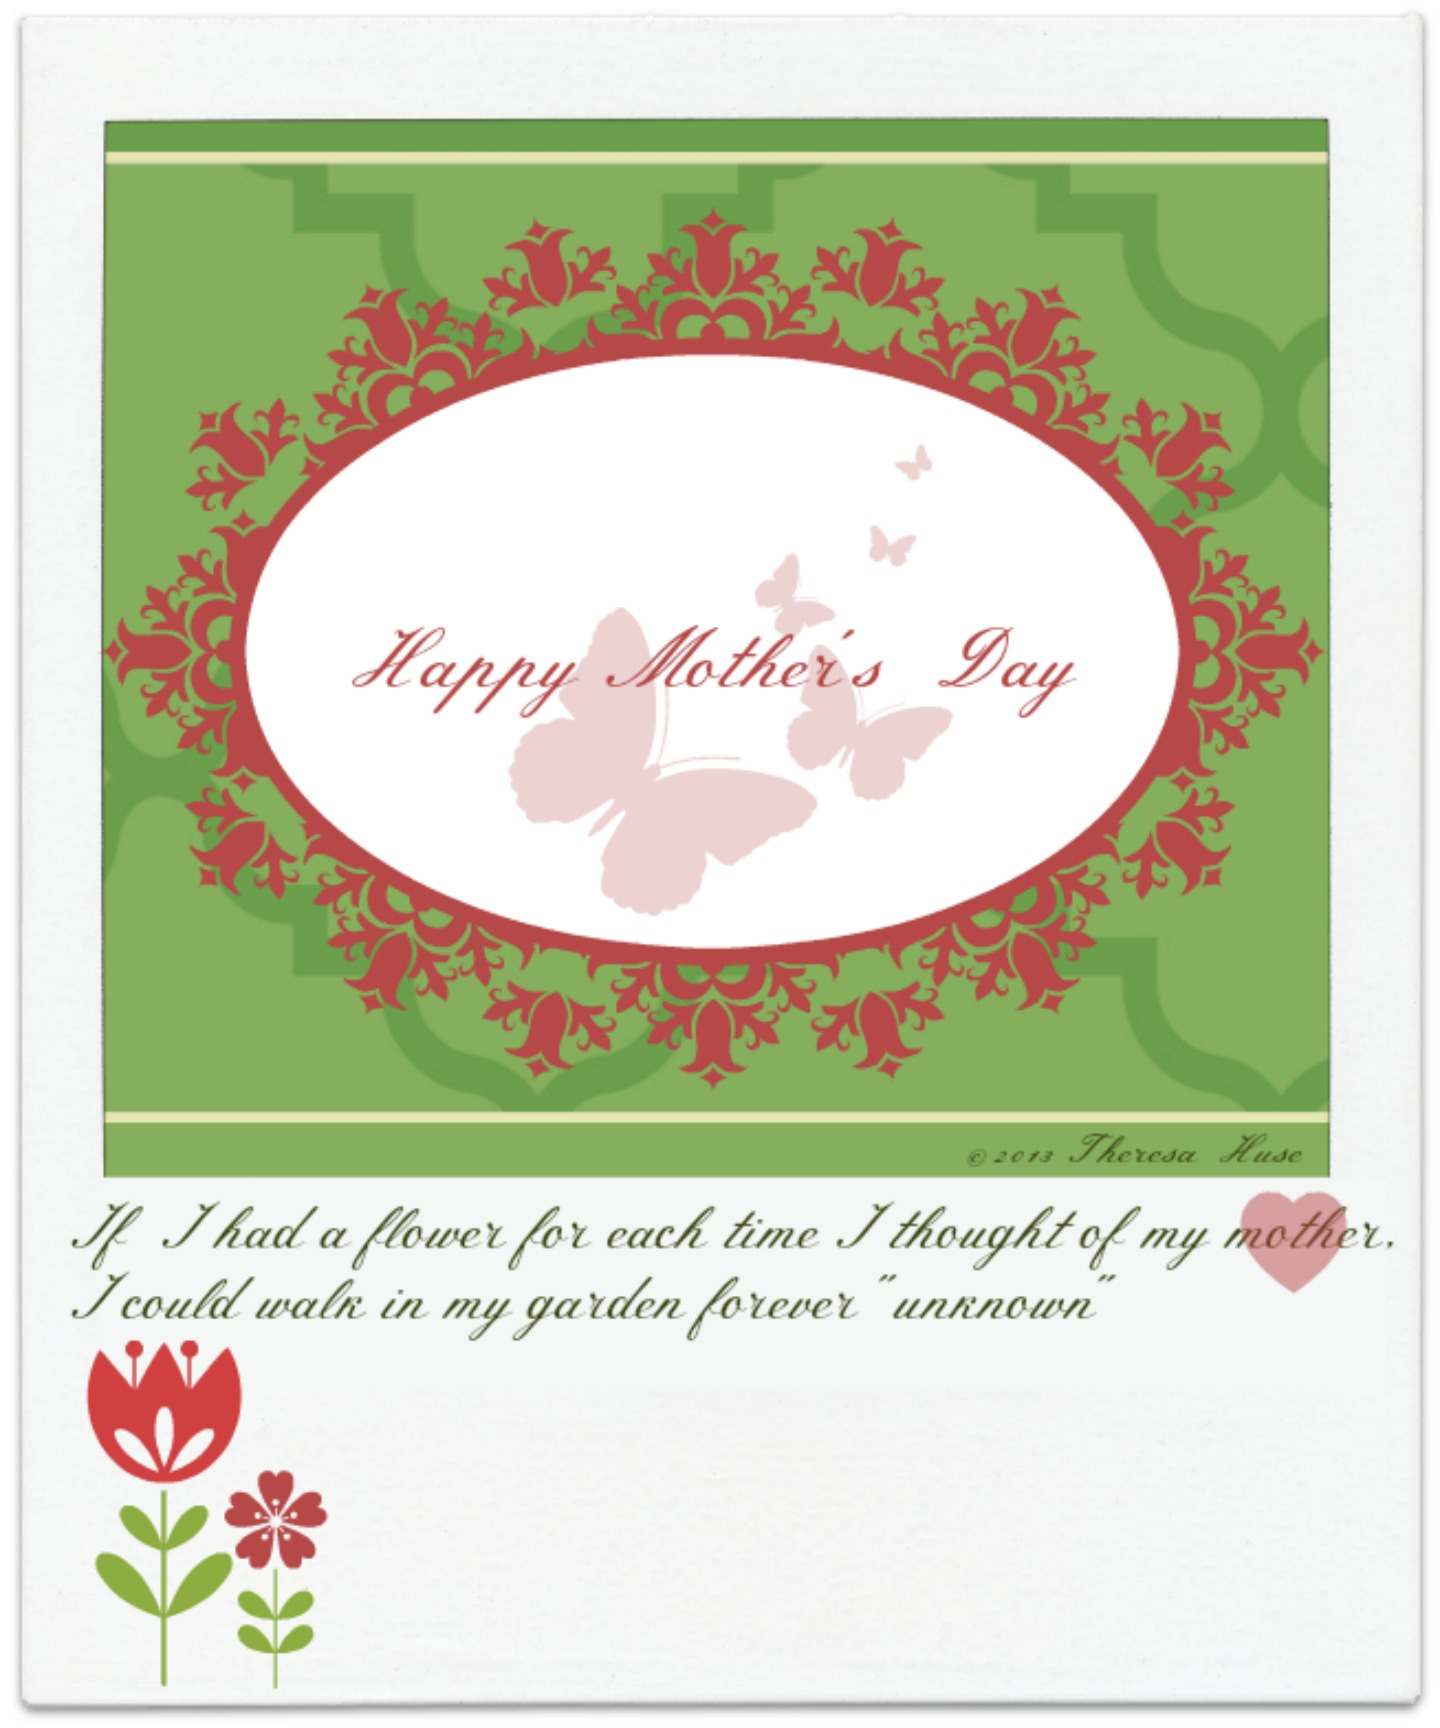 Last Minute Diy Projects & 2 Printables for Mother's Day